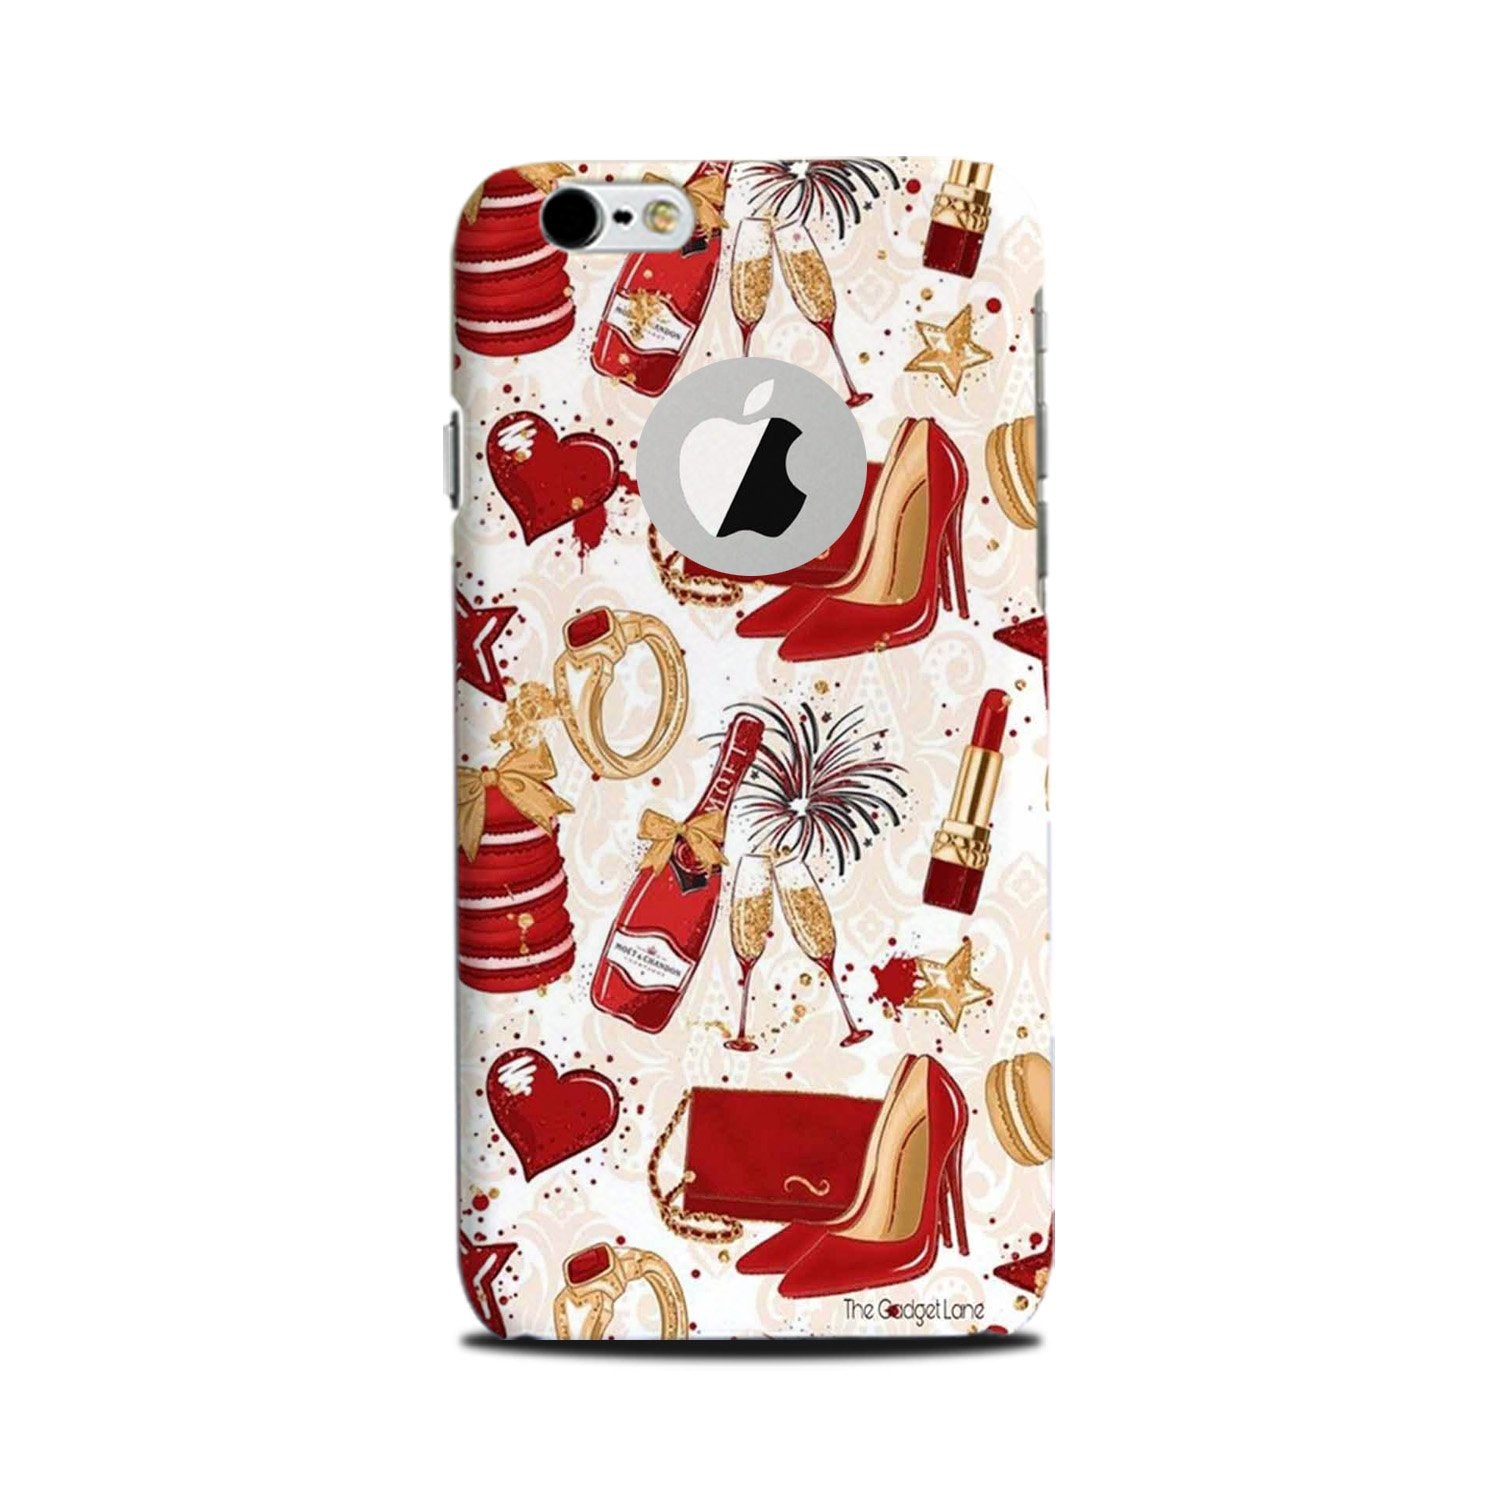 Girlish Mobile Back Case for iPhone 6 Plus / 6s Plus Logo Cut  (Design - 312)